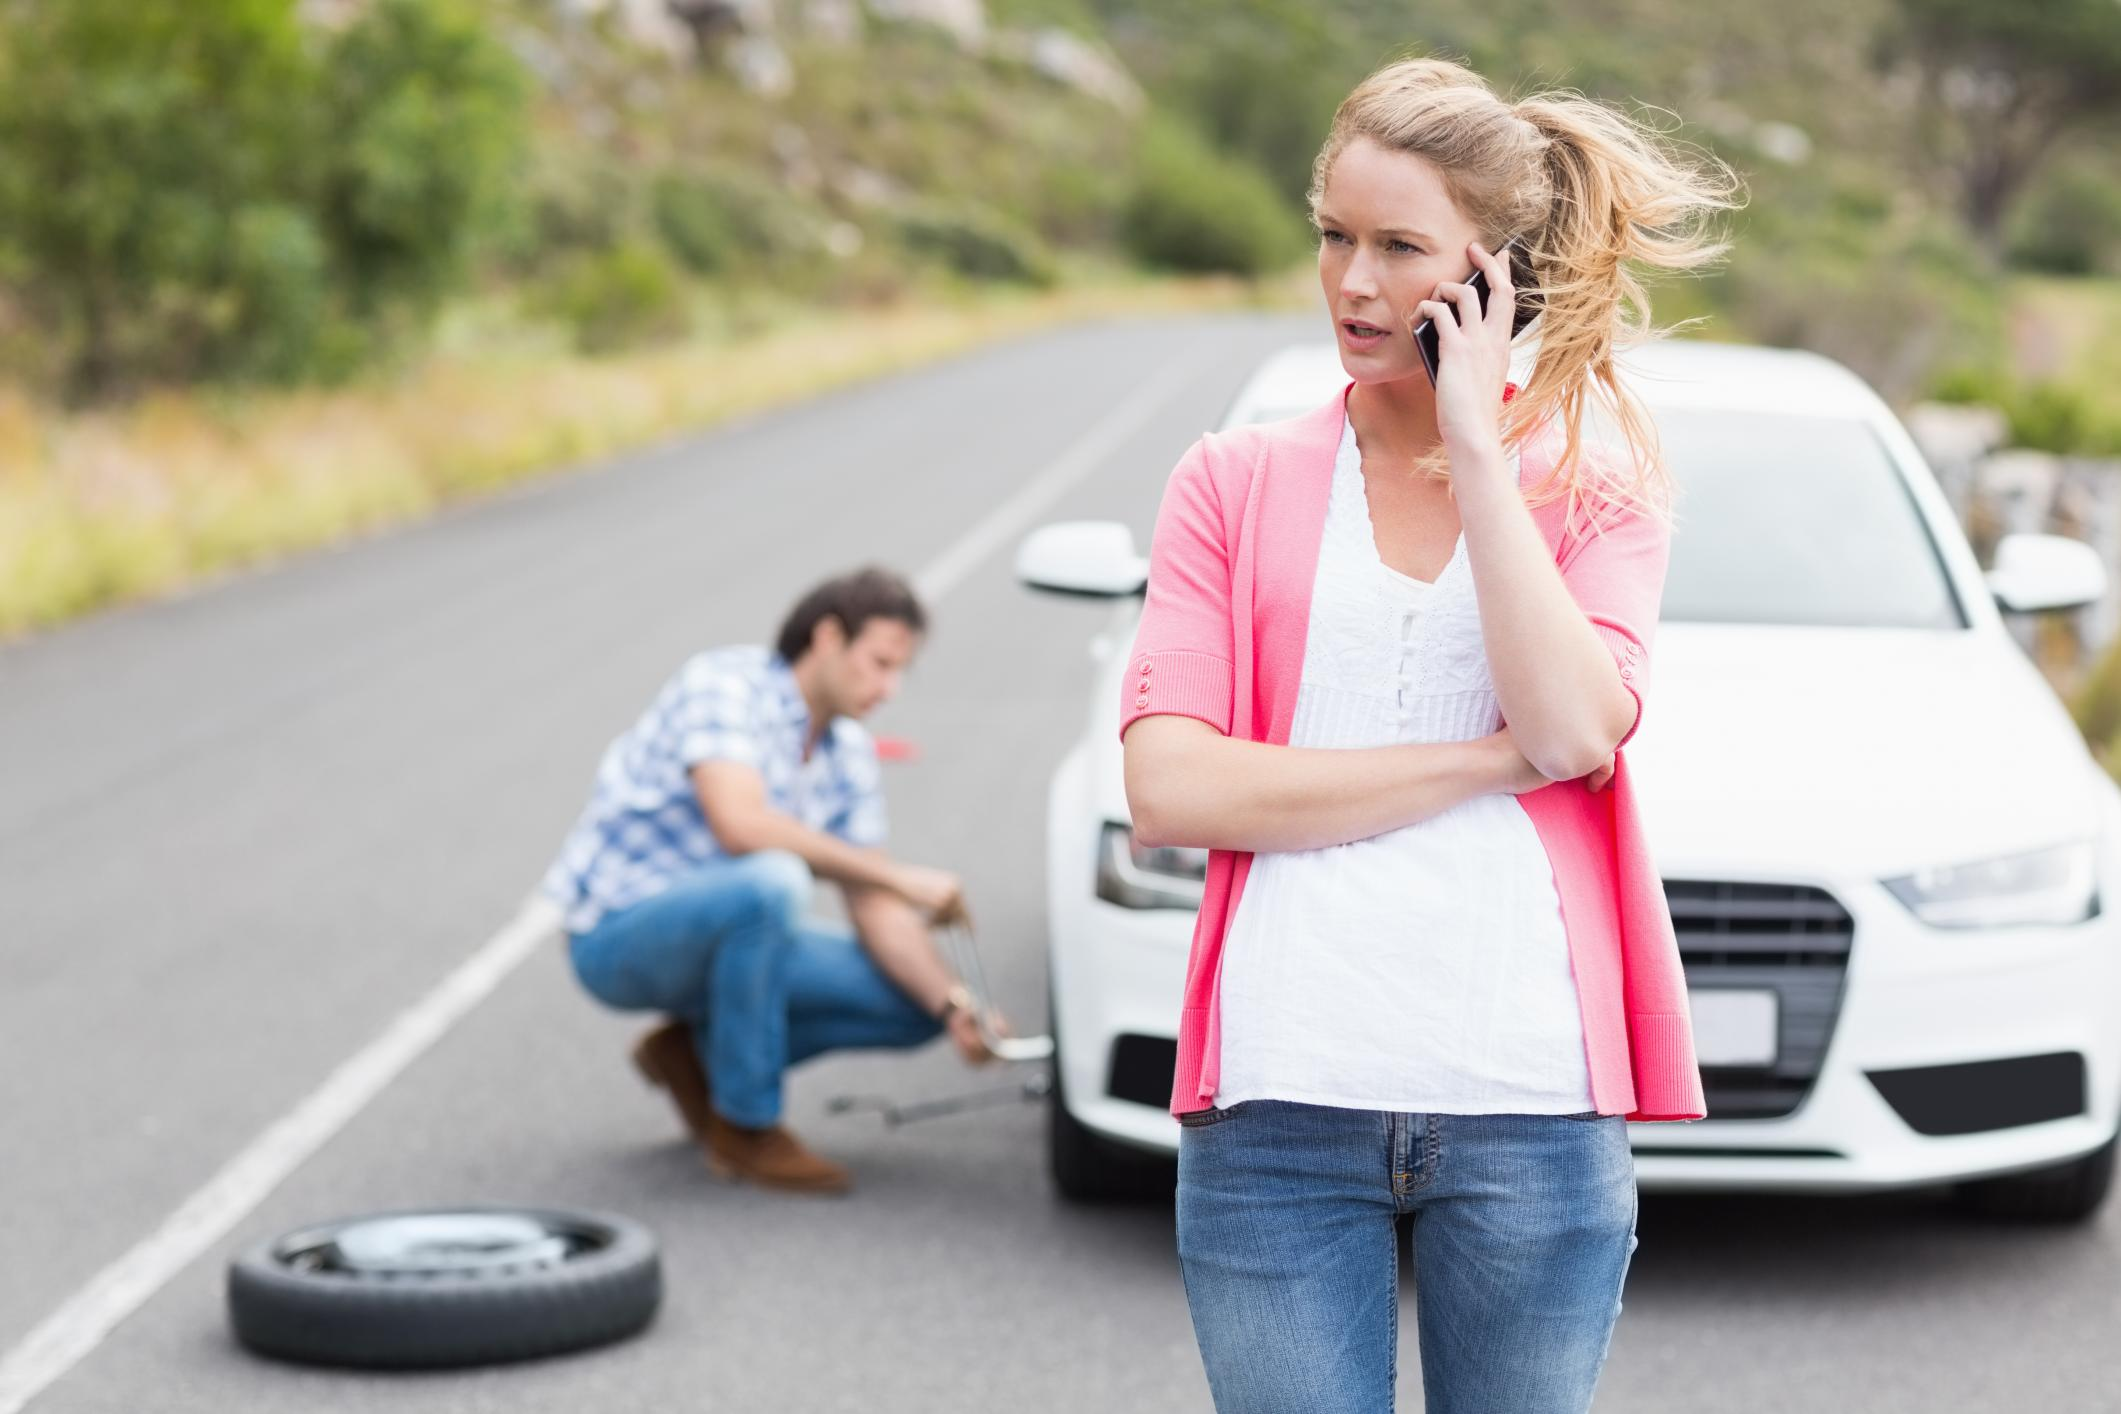 Gastonia Towing Service - Contact